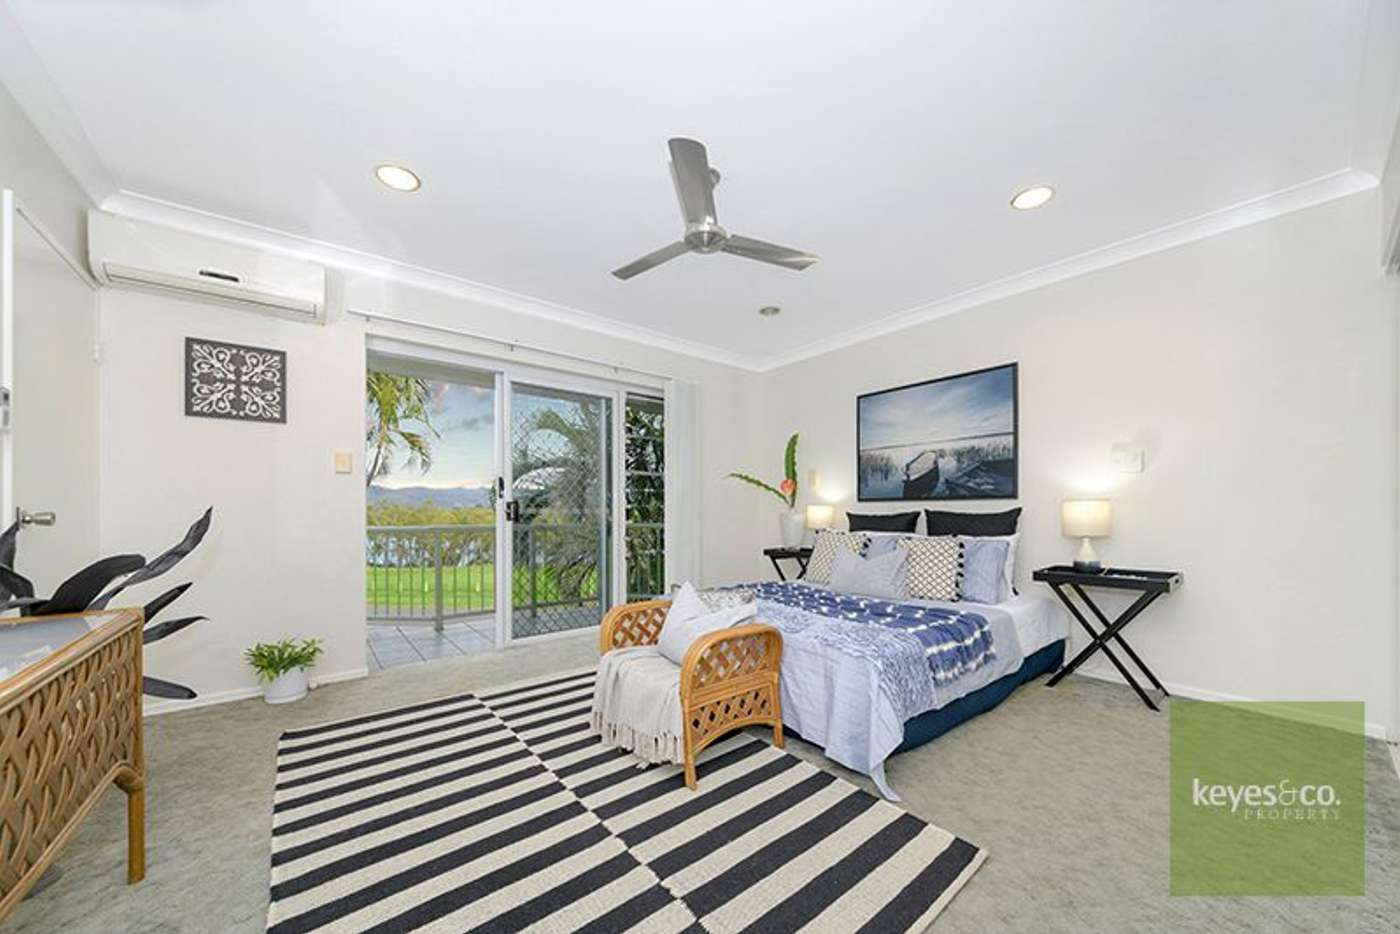 Fifth view of Homely unit listing, 2/20-22 Cameron Street, Railway Estate QLD 4810